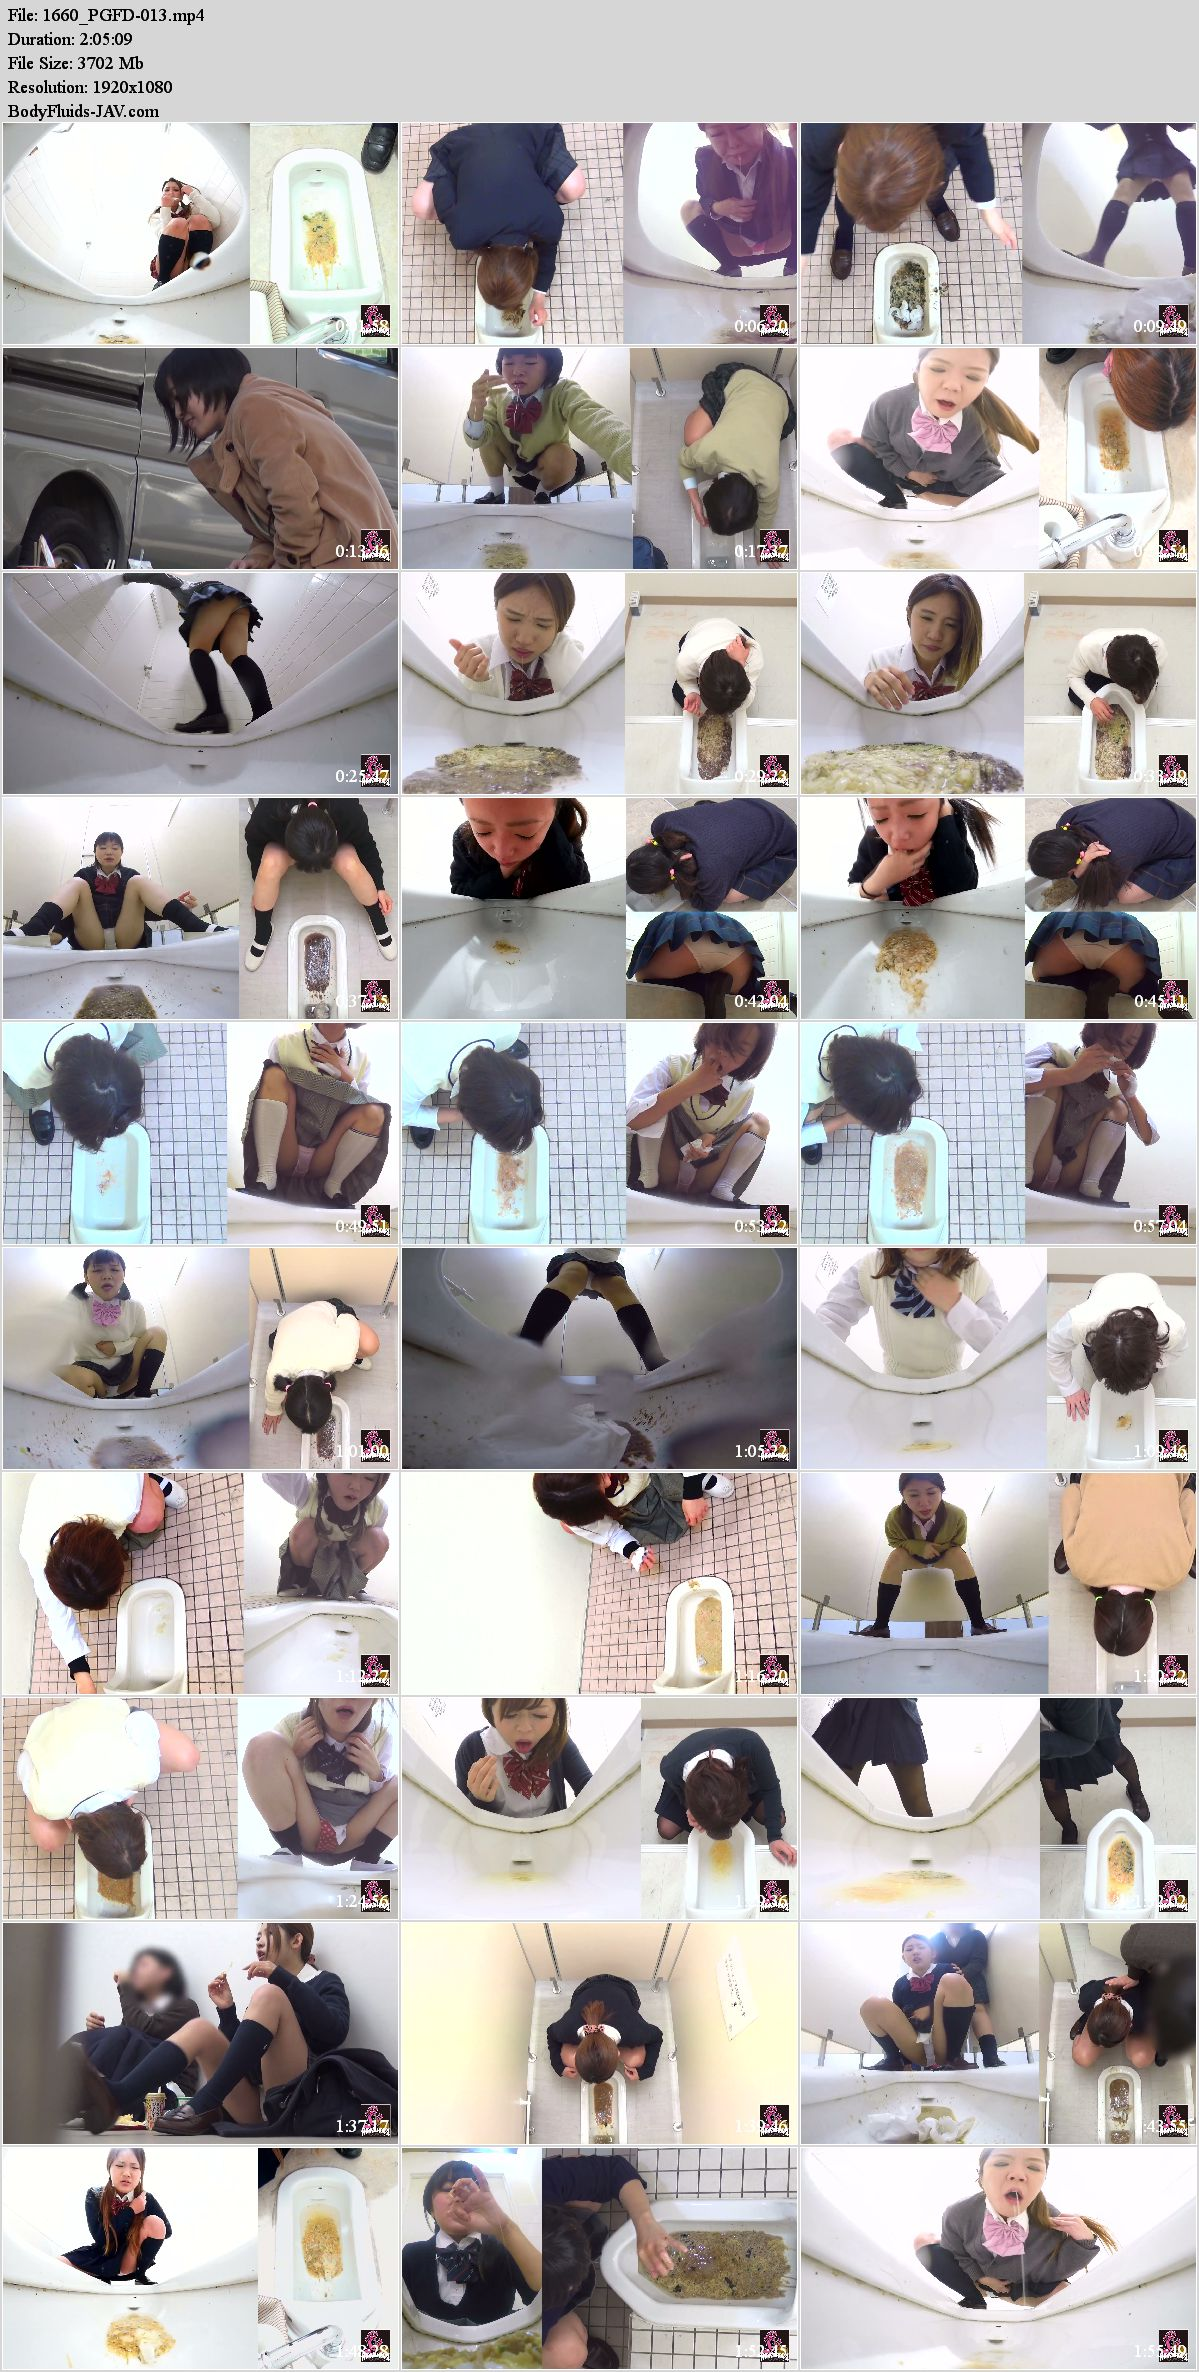 PGFD-013 Puking schoolgirls in toilet after food poisoning. (HD 1080p)